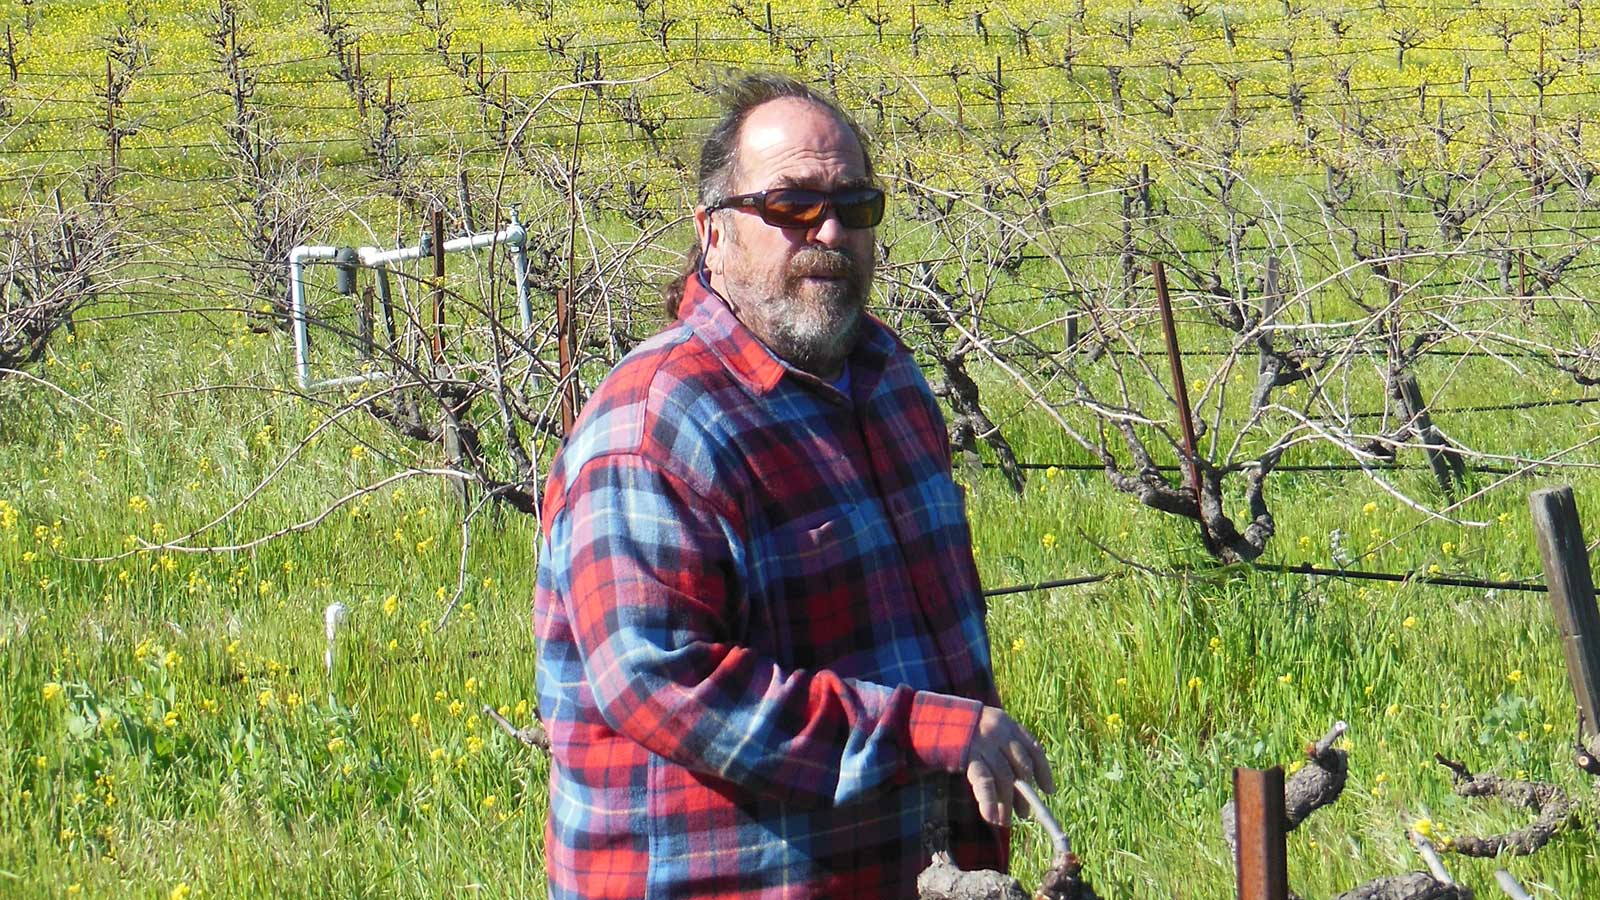 Phil Coturri followed his heart from San Francisco to Napa, where he has become one of wine country's most sought-after sustainable grapegrowing consultants.